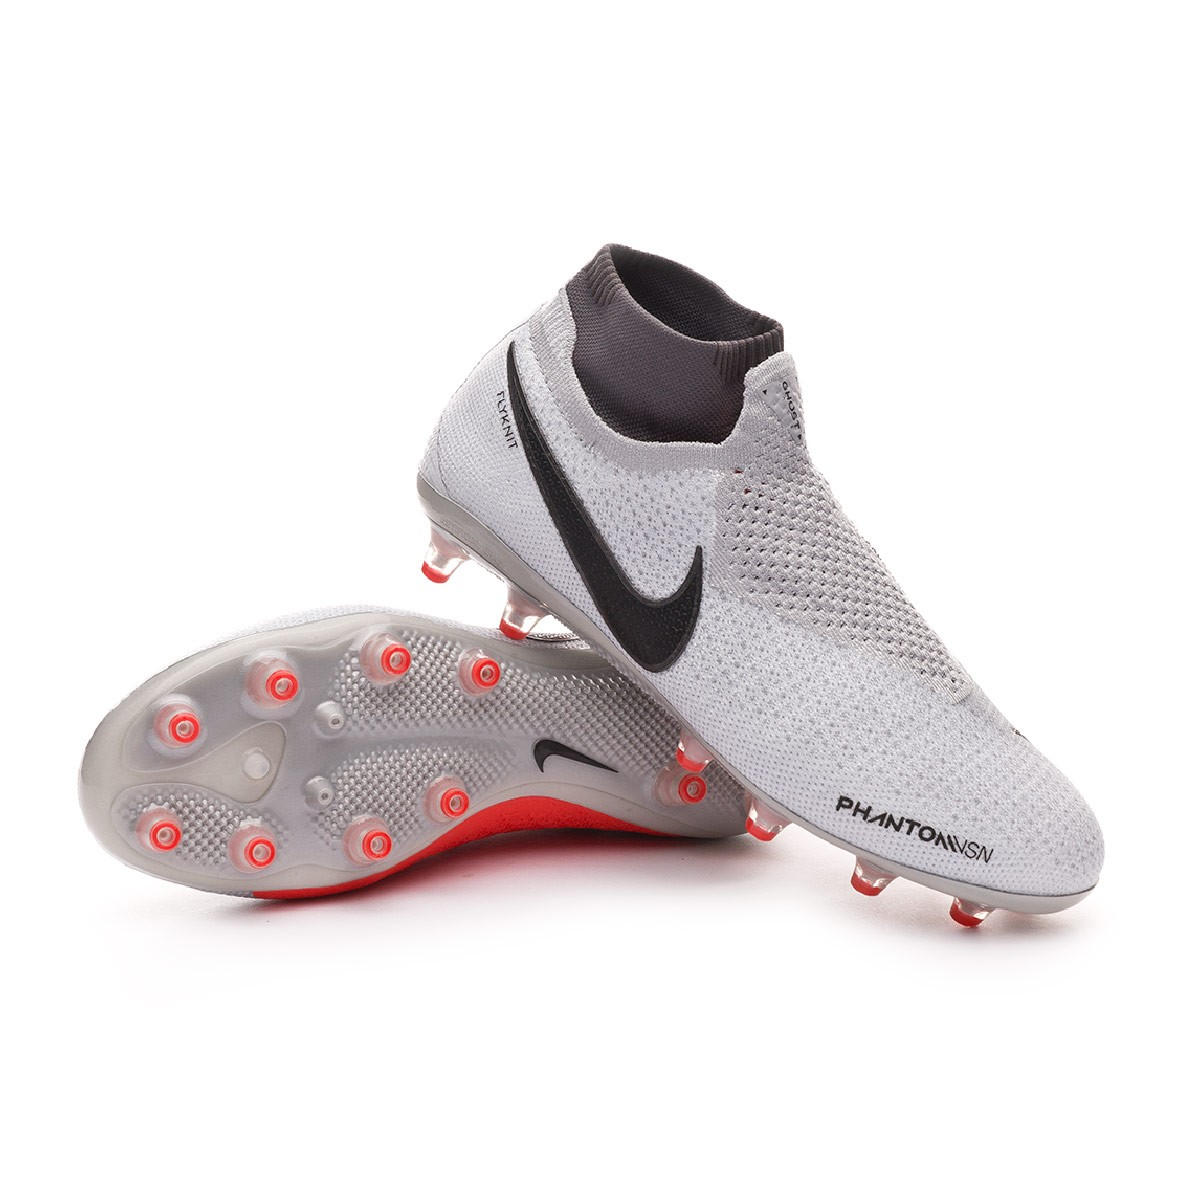 f0cc63002 Football Boots Nike Phantom Vision Elite DF AG-Pro Pure  platinum-Black-Light crimson-Dark grey - Football store Fútbol Emotion